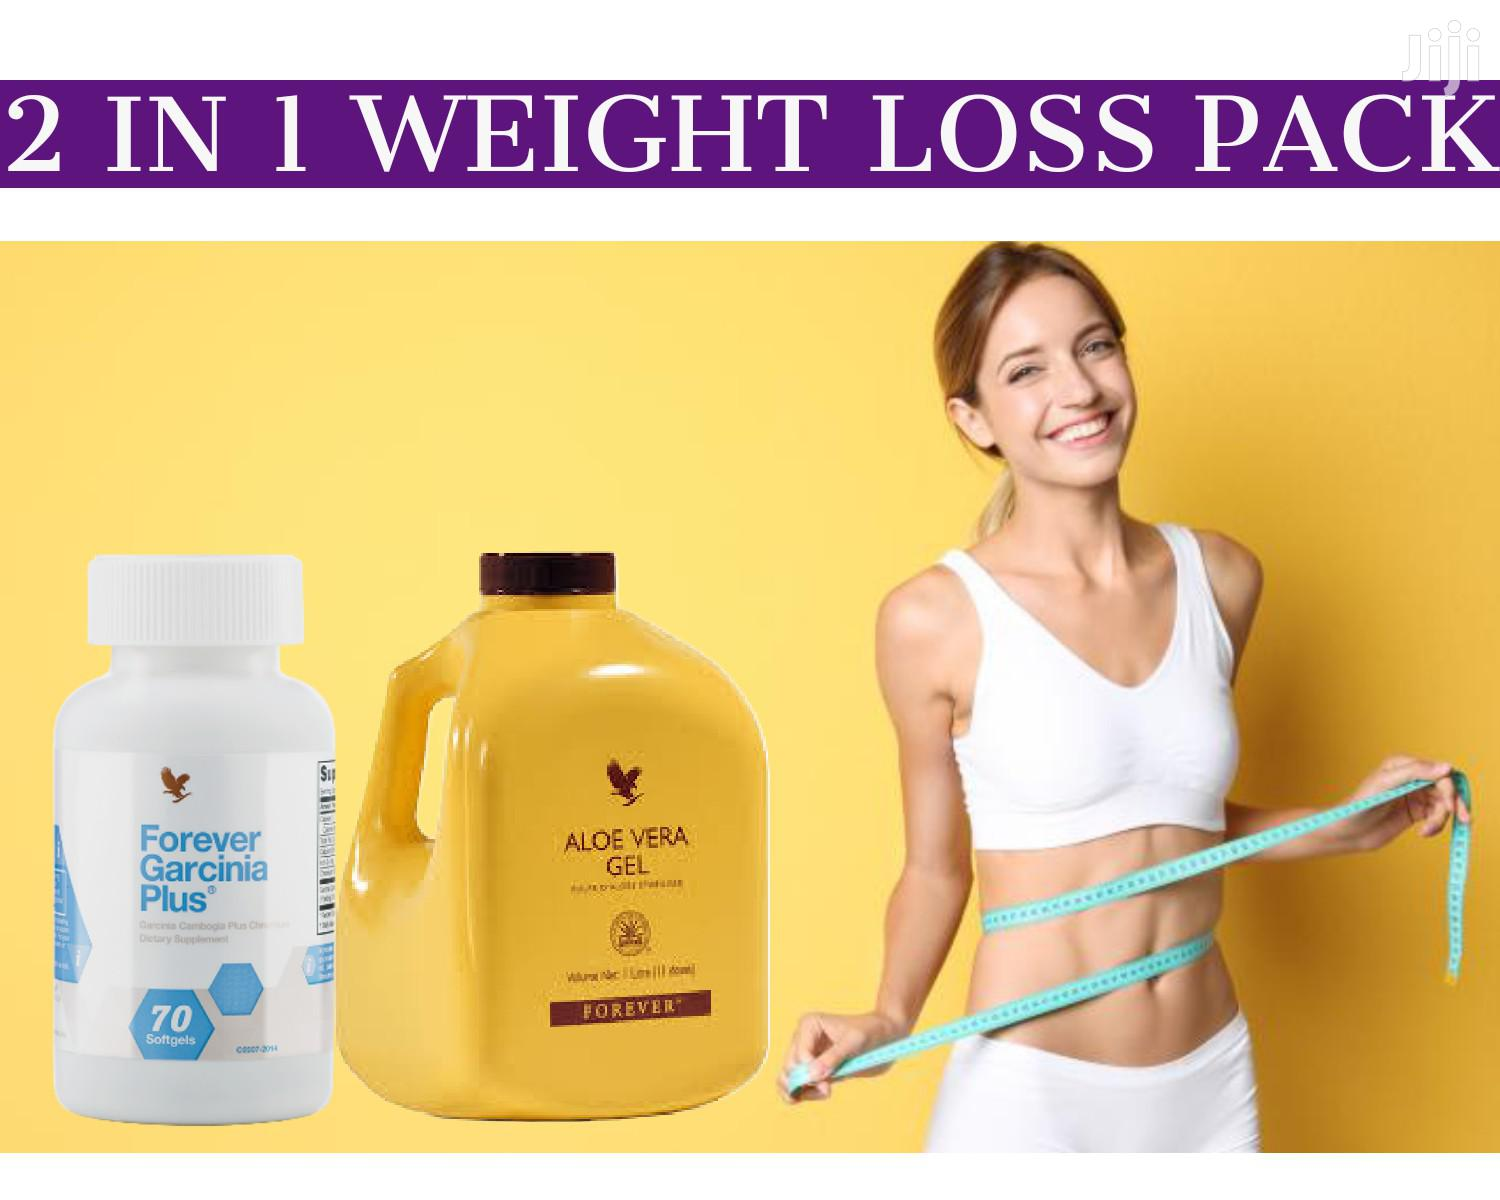 2 In 1 Effective Weight Loss And Flat Tummy Pack